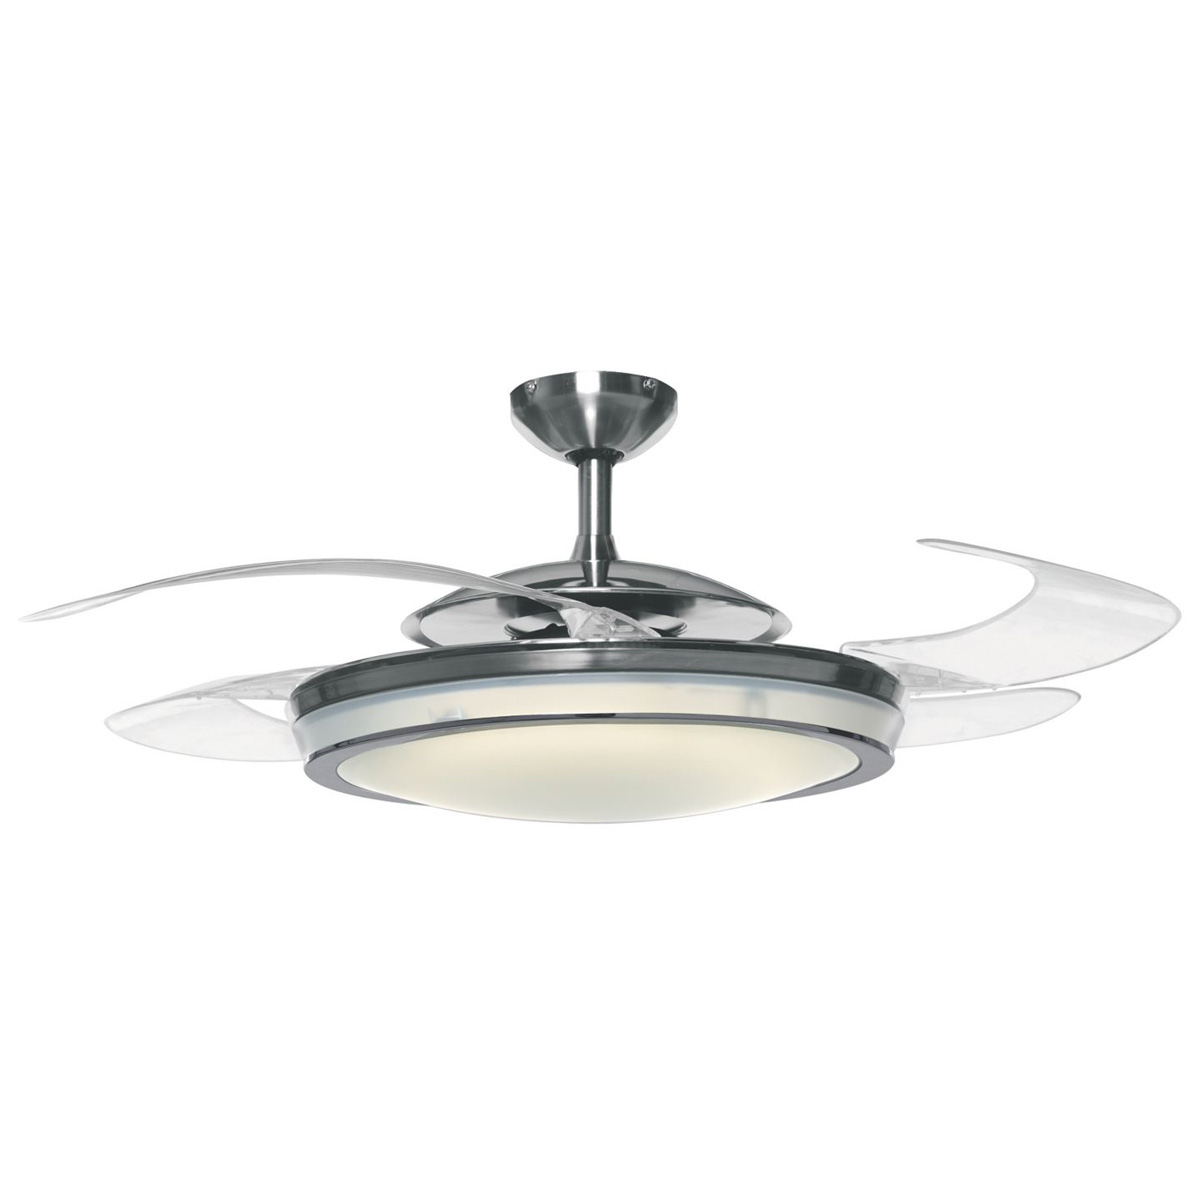 Ceiling Fans With Lights : Hunter fanaway retractable blade ceiling fan pendant